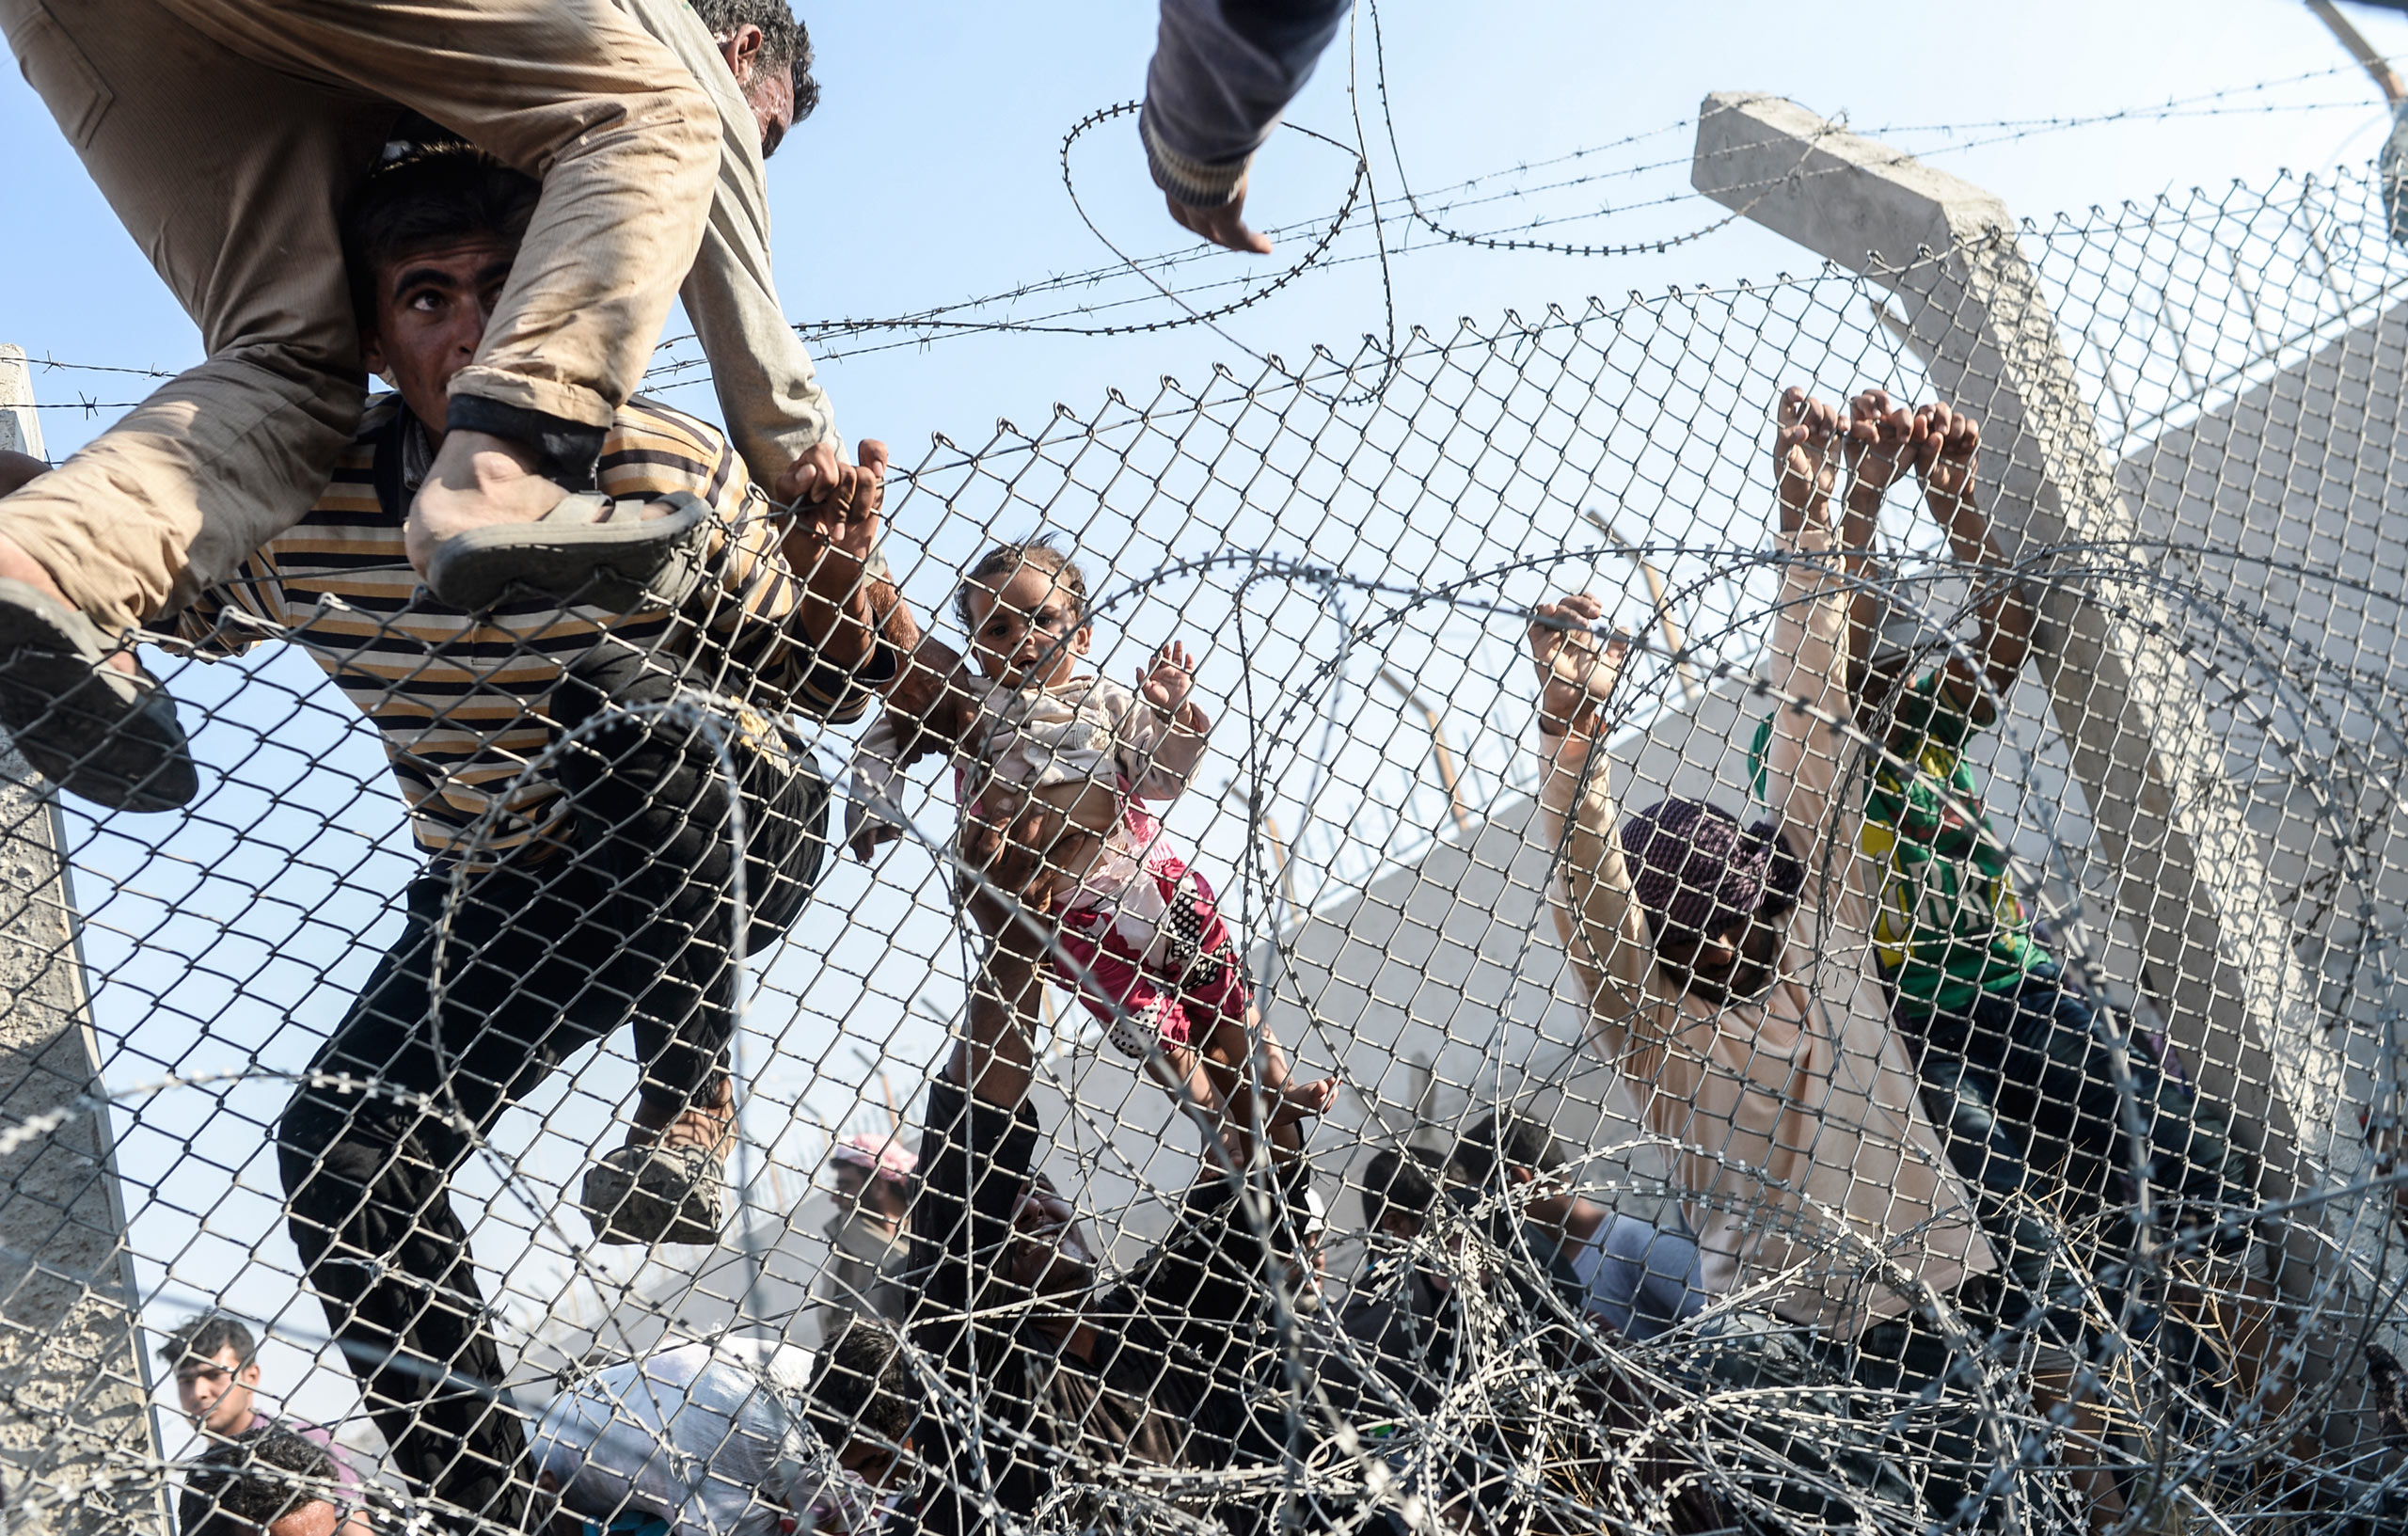 Syrian refugees break through the wire fences, crossing illegally the Syrian-Turkish border.  June 14, 2015.